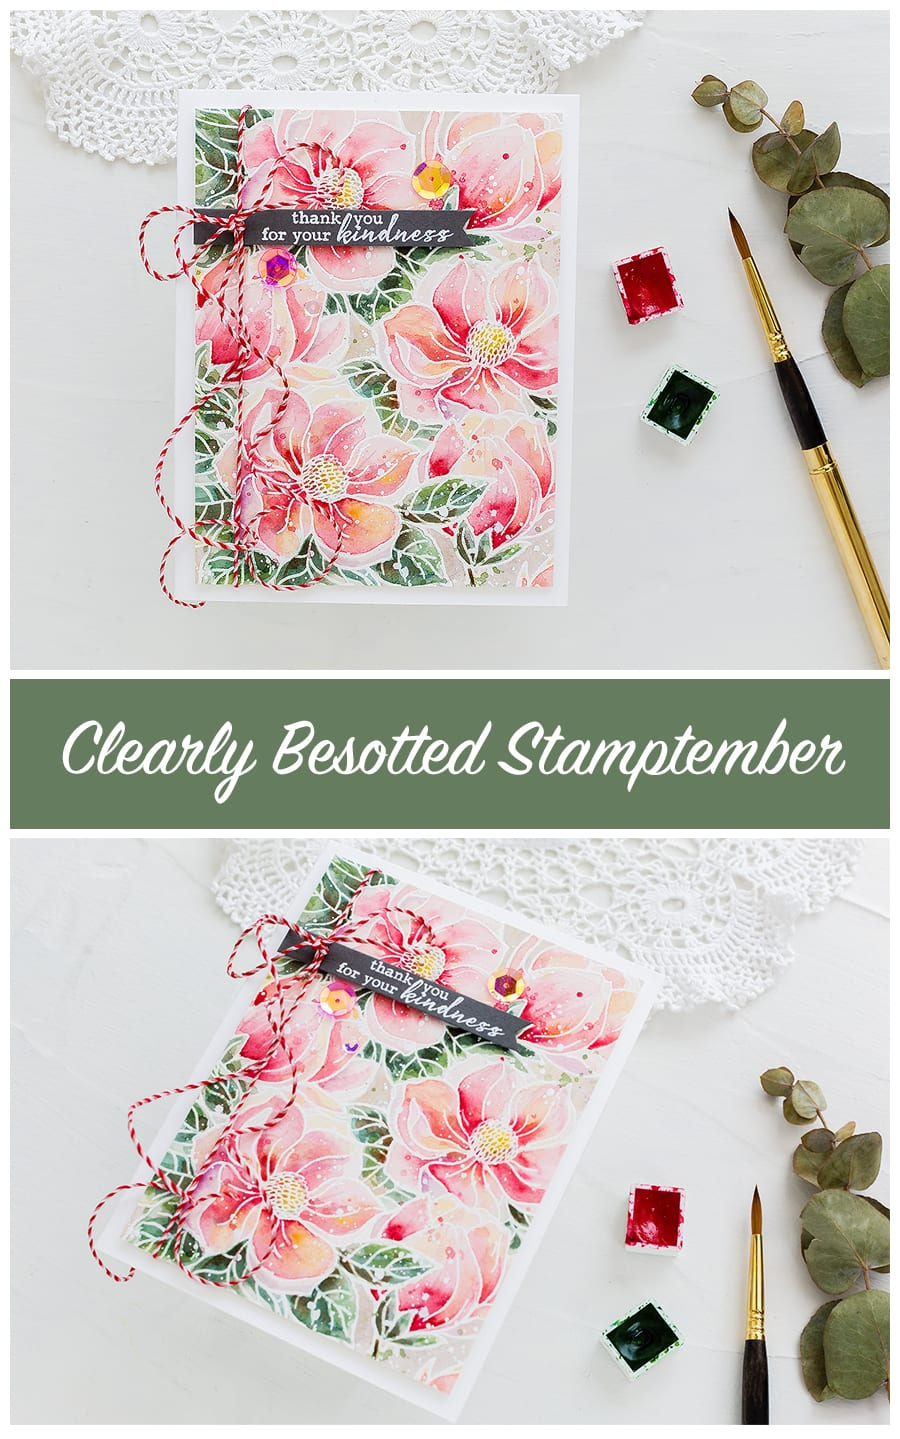 Softly watercoloured magnolia handmade kindness card by Debby Hughes using the Clearly Besotted STAMPtember set. Find out more here: https://limedoodledesign.com/2018/09/clearly-besotted-stamptember-2/